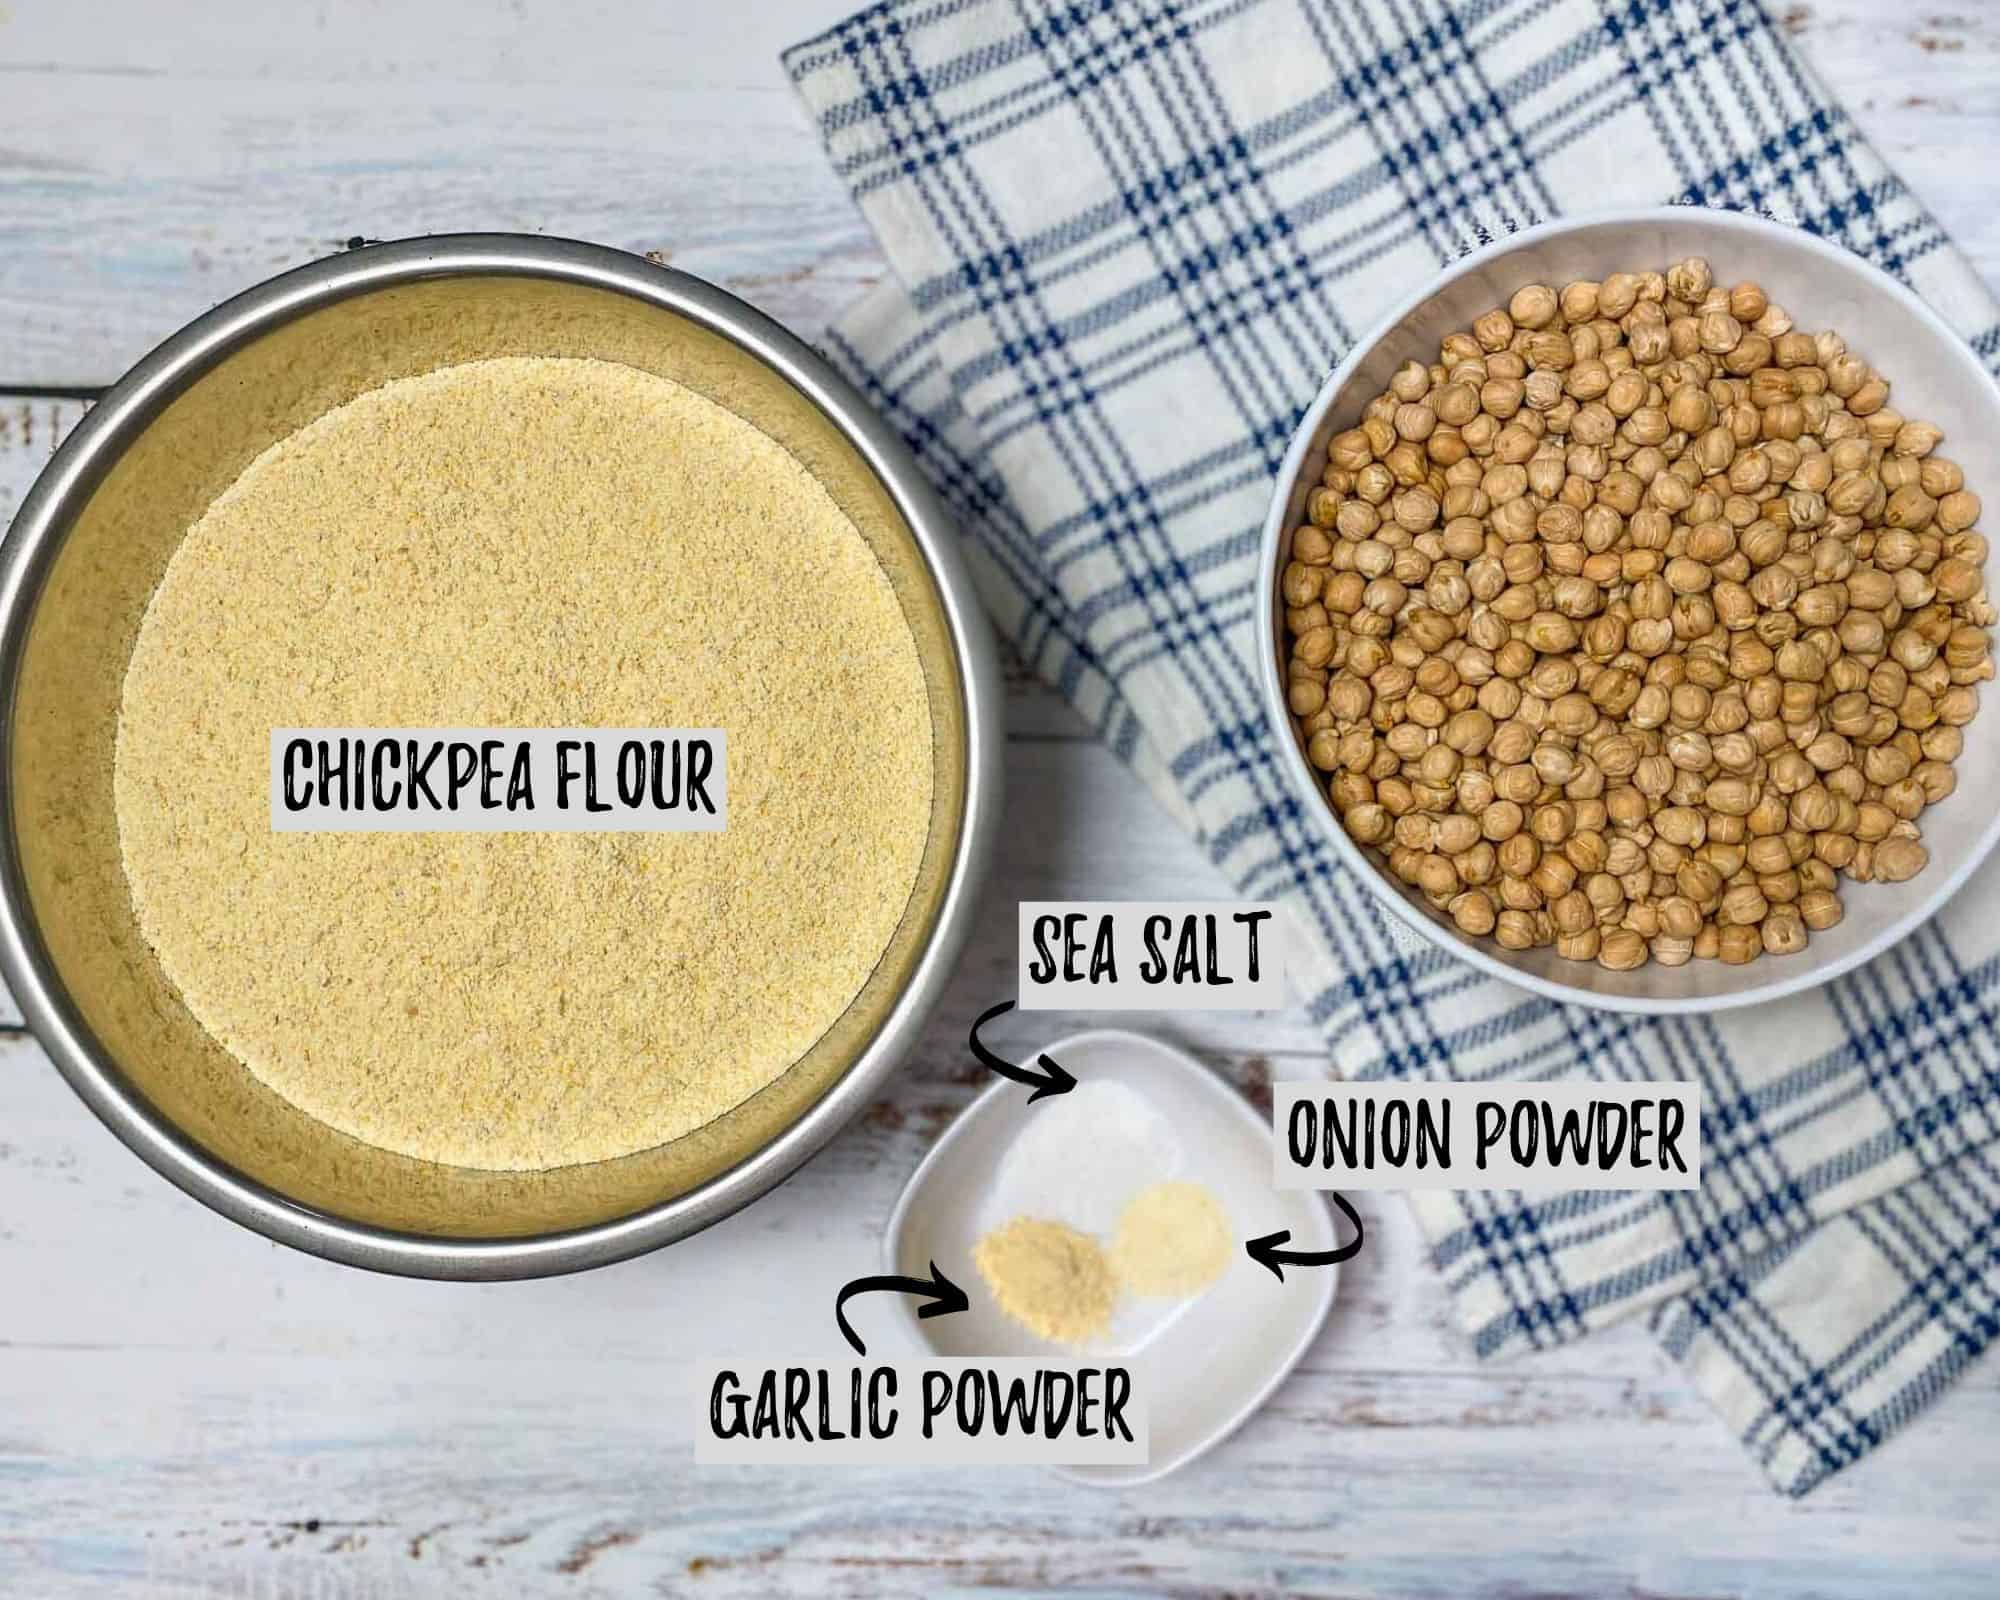 bowl of flour and bowl of chickpeas with blue and white towel underneath